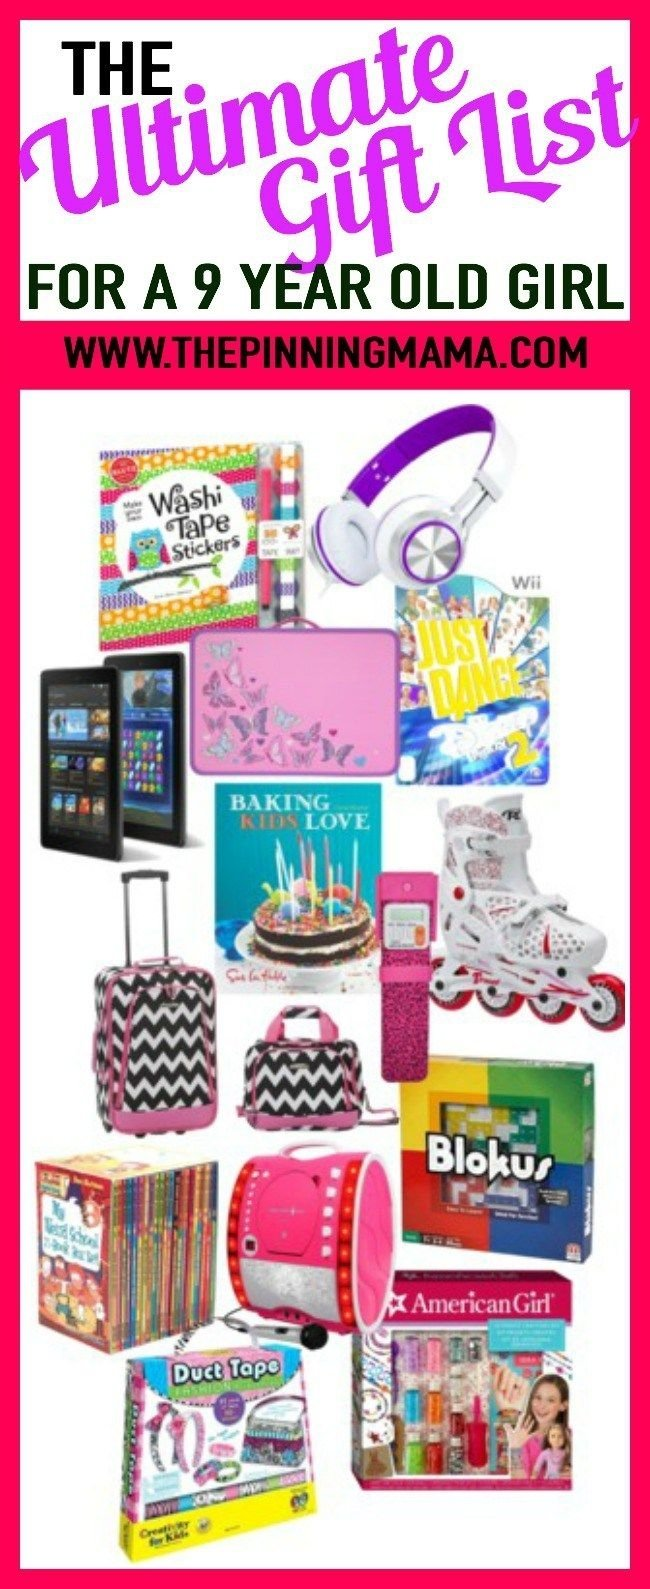 10 Lovable Birthday Gift Ideas For 6 Year Old Girl The Ultimate List A